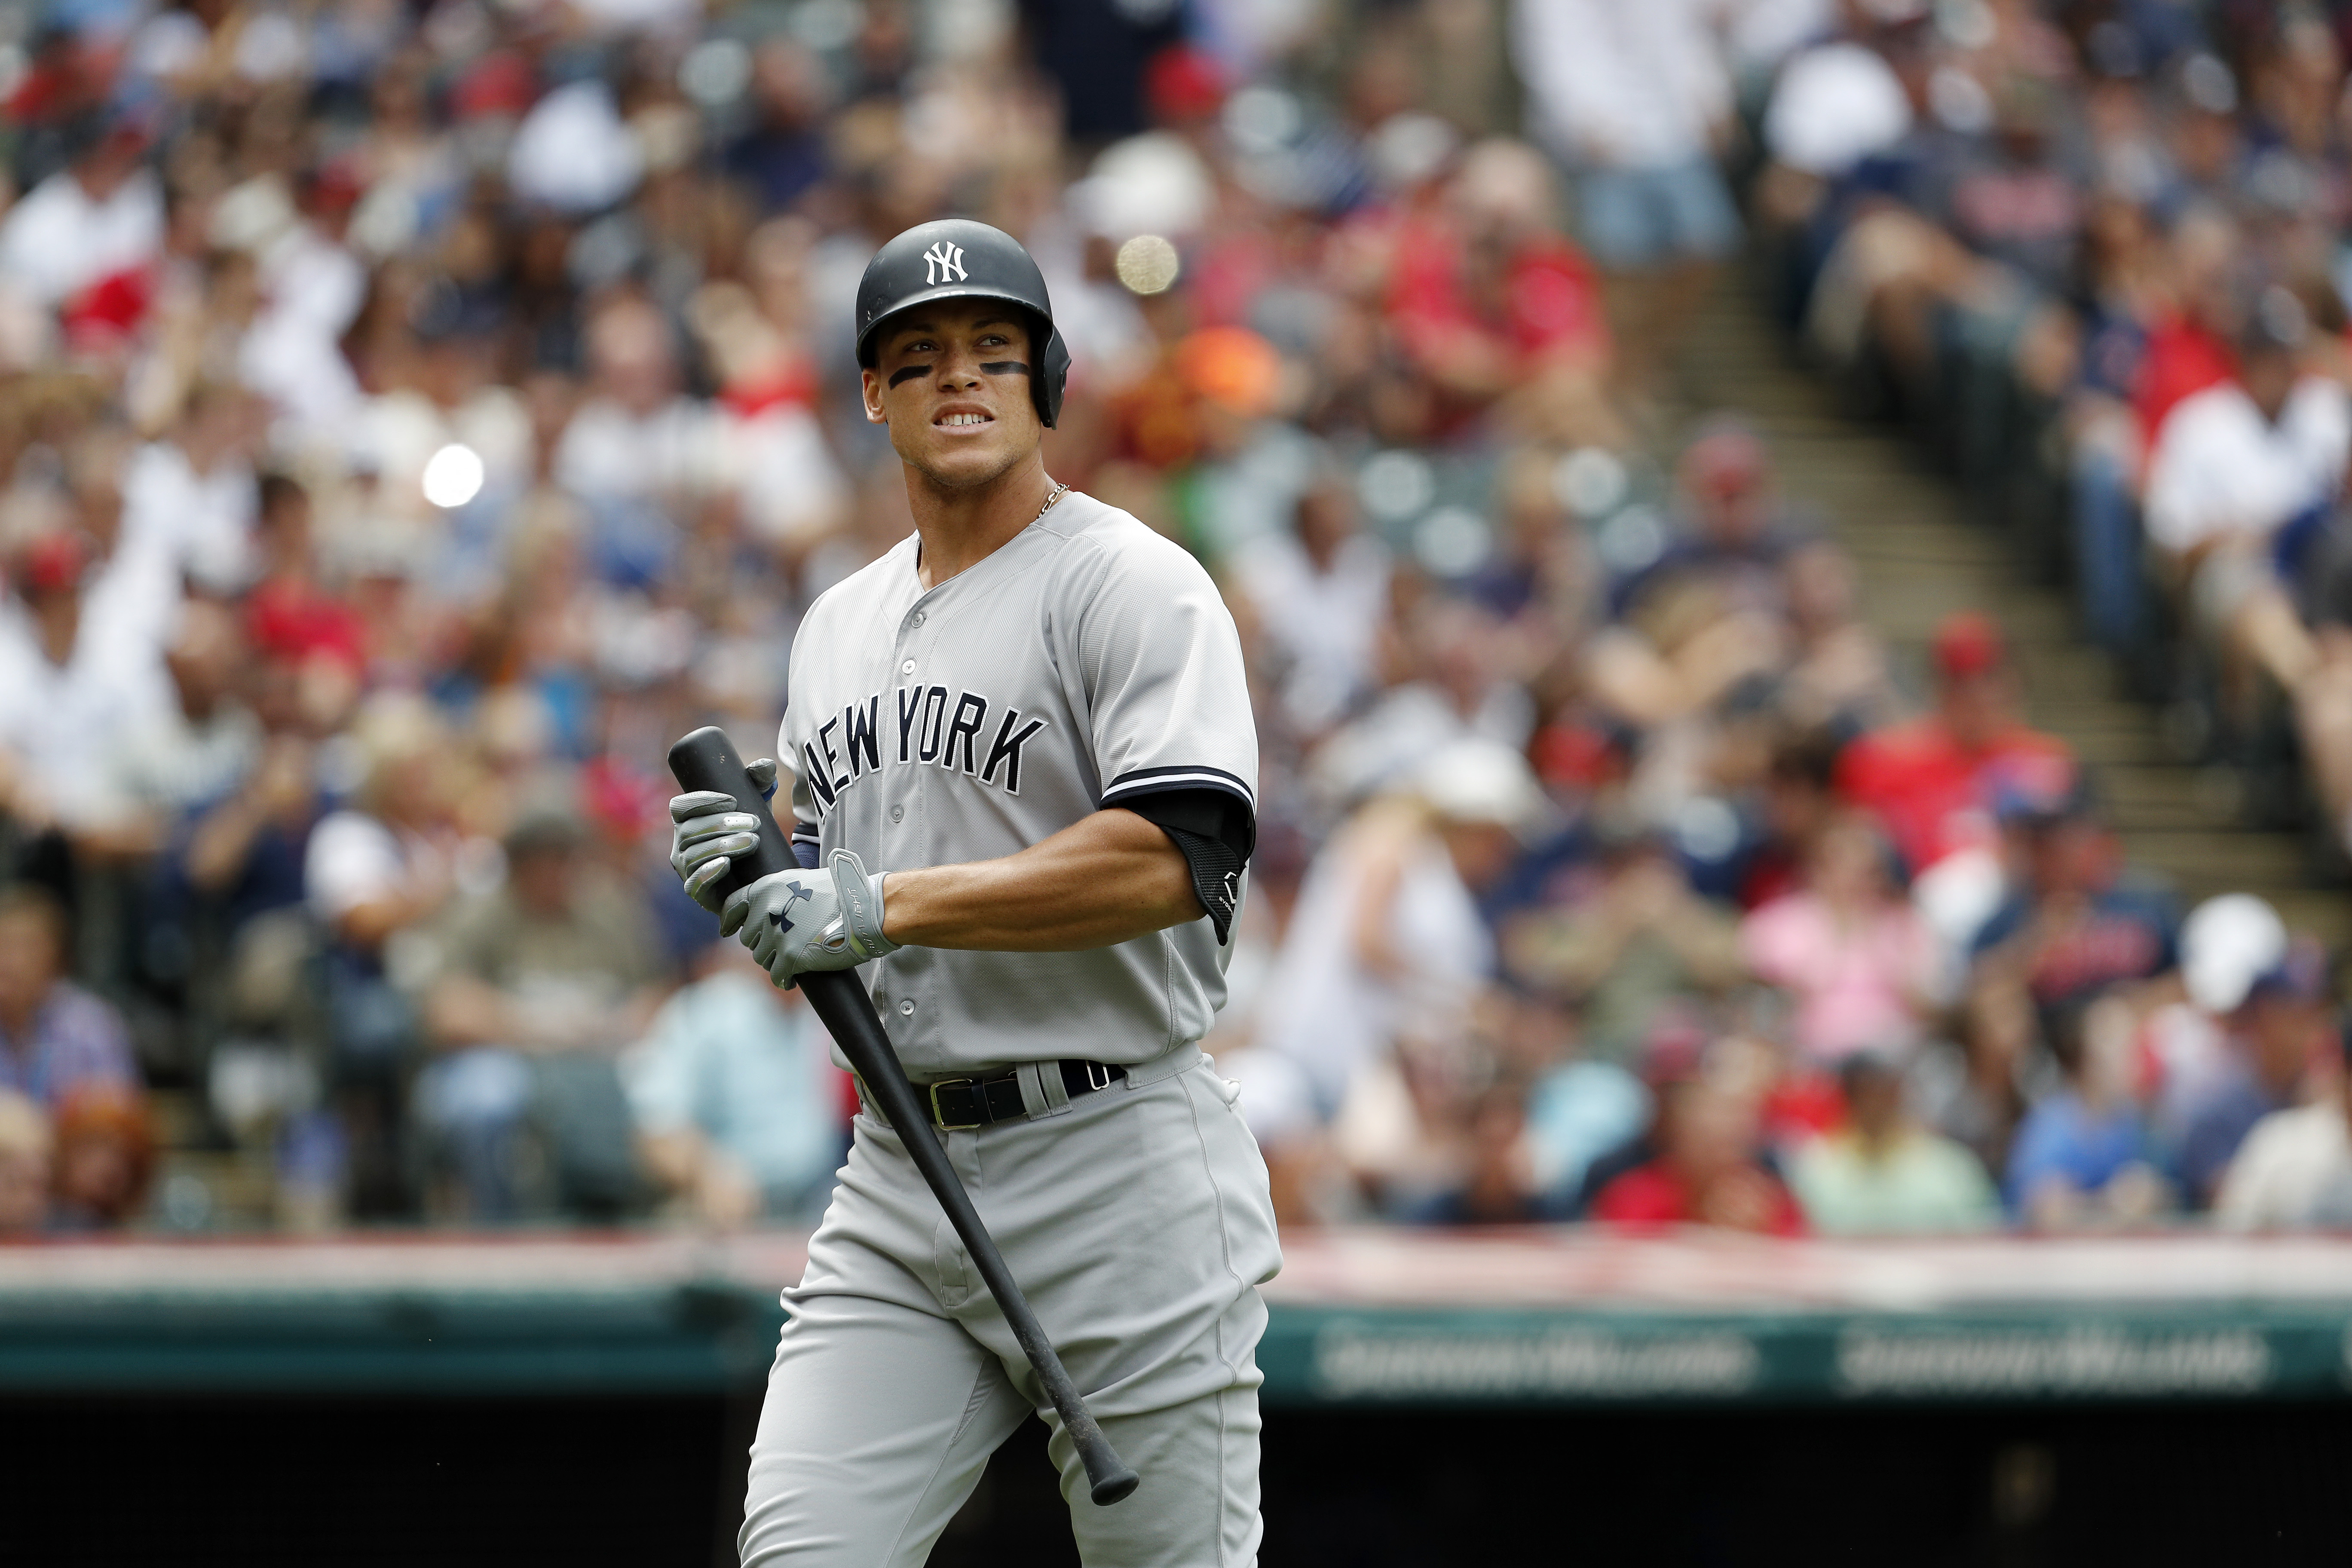 CLEVELAND OH – AUGUST 06 Aaron Judge